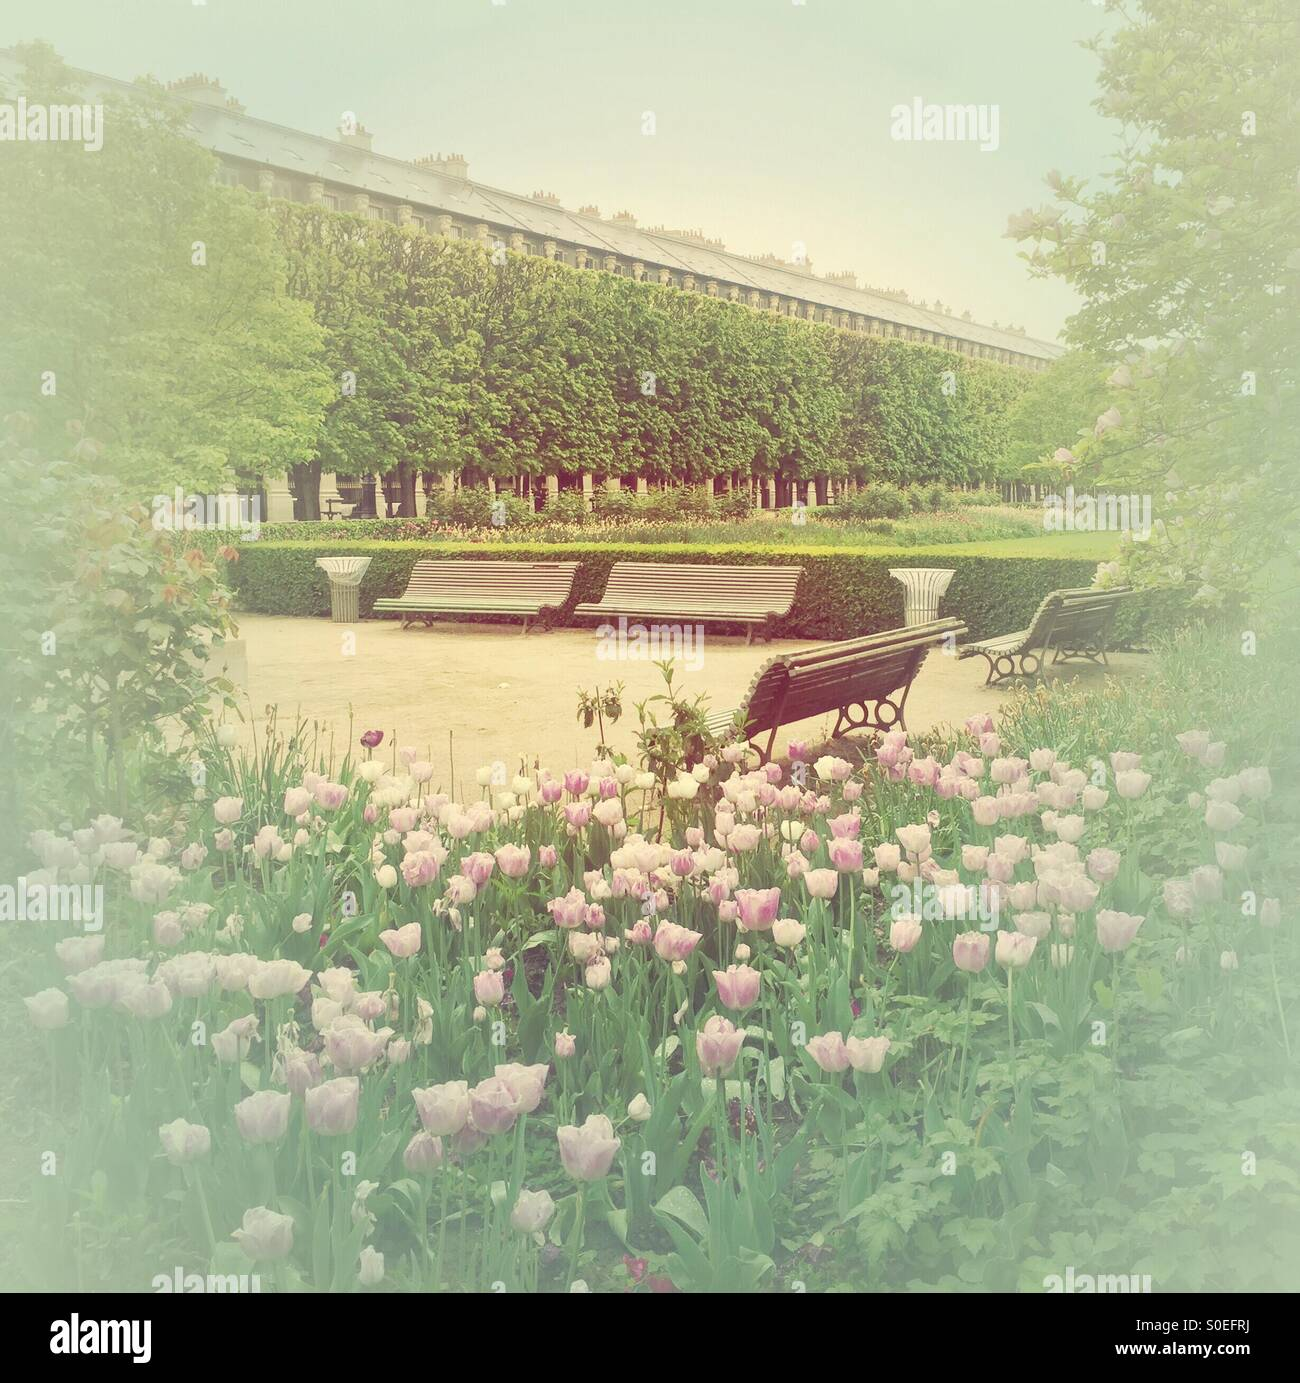 Pink tulips and benches at park Jardin du Palais-Royal in Paris, France. Warm, retro, faded look. Stock Photo